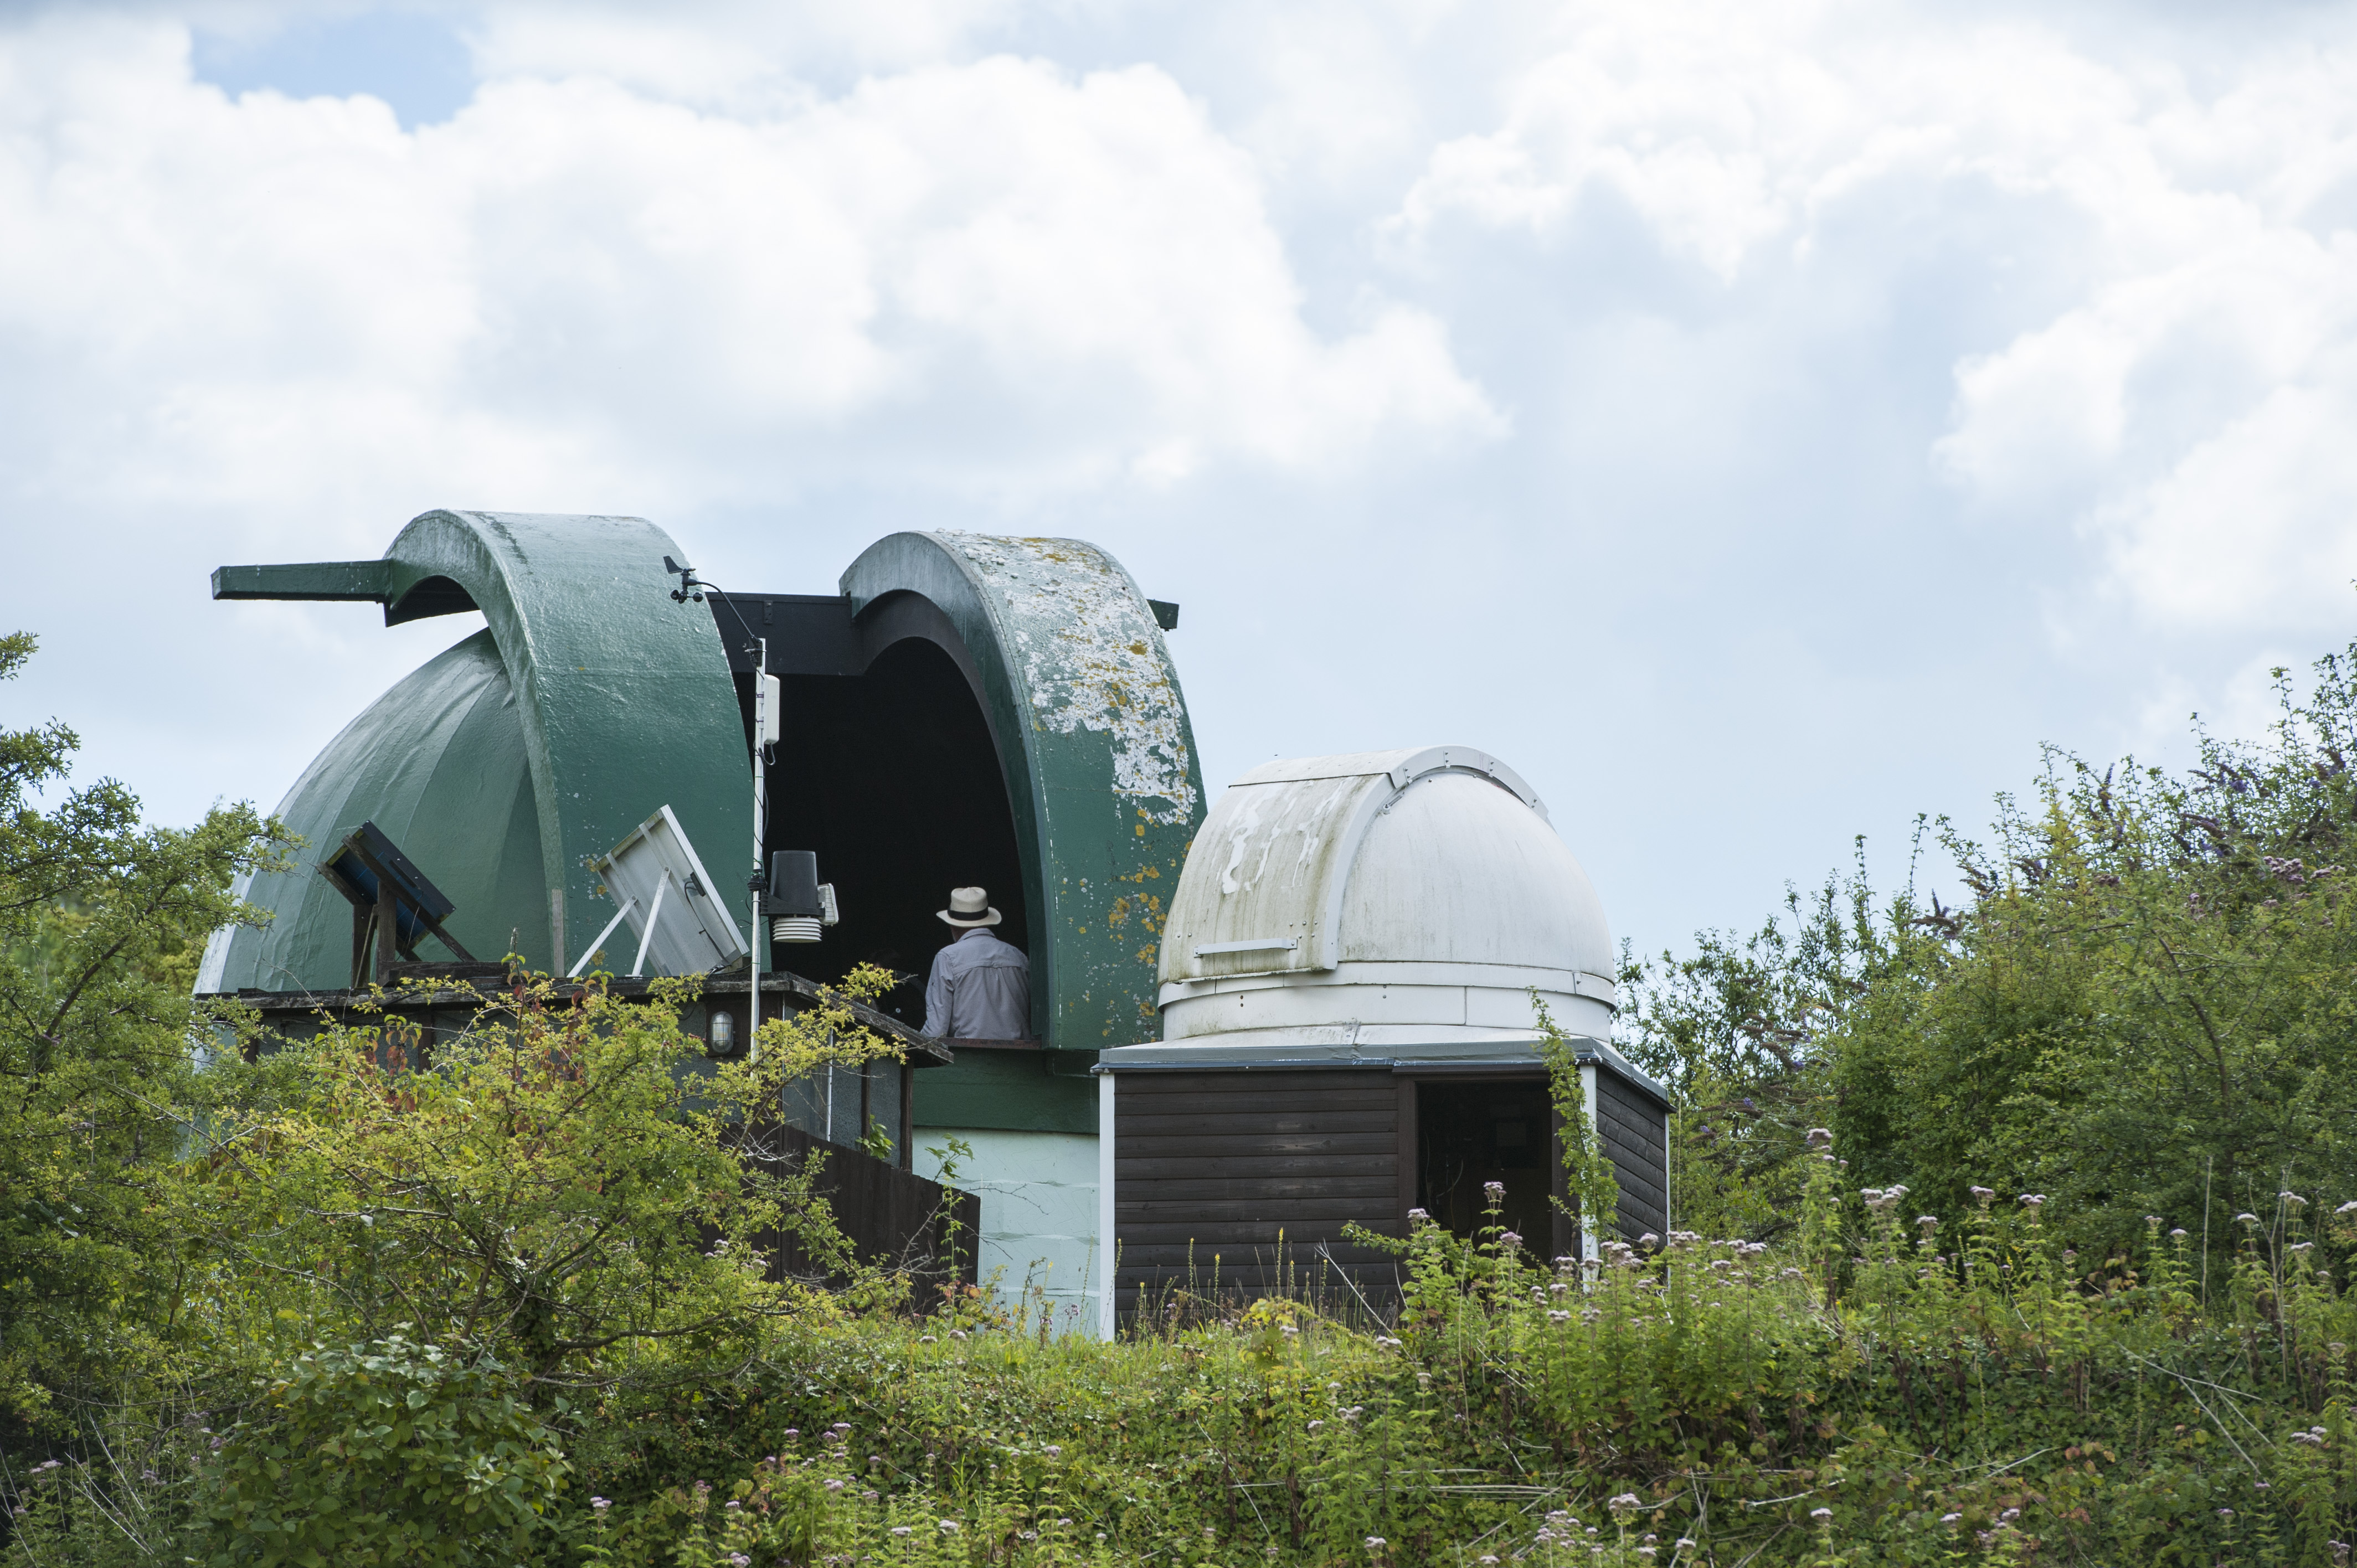 The Monkton Stargazers' observatory in Monkton Nature Reserve. Image by Chris Constantine.